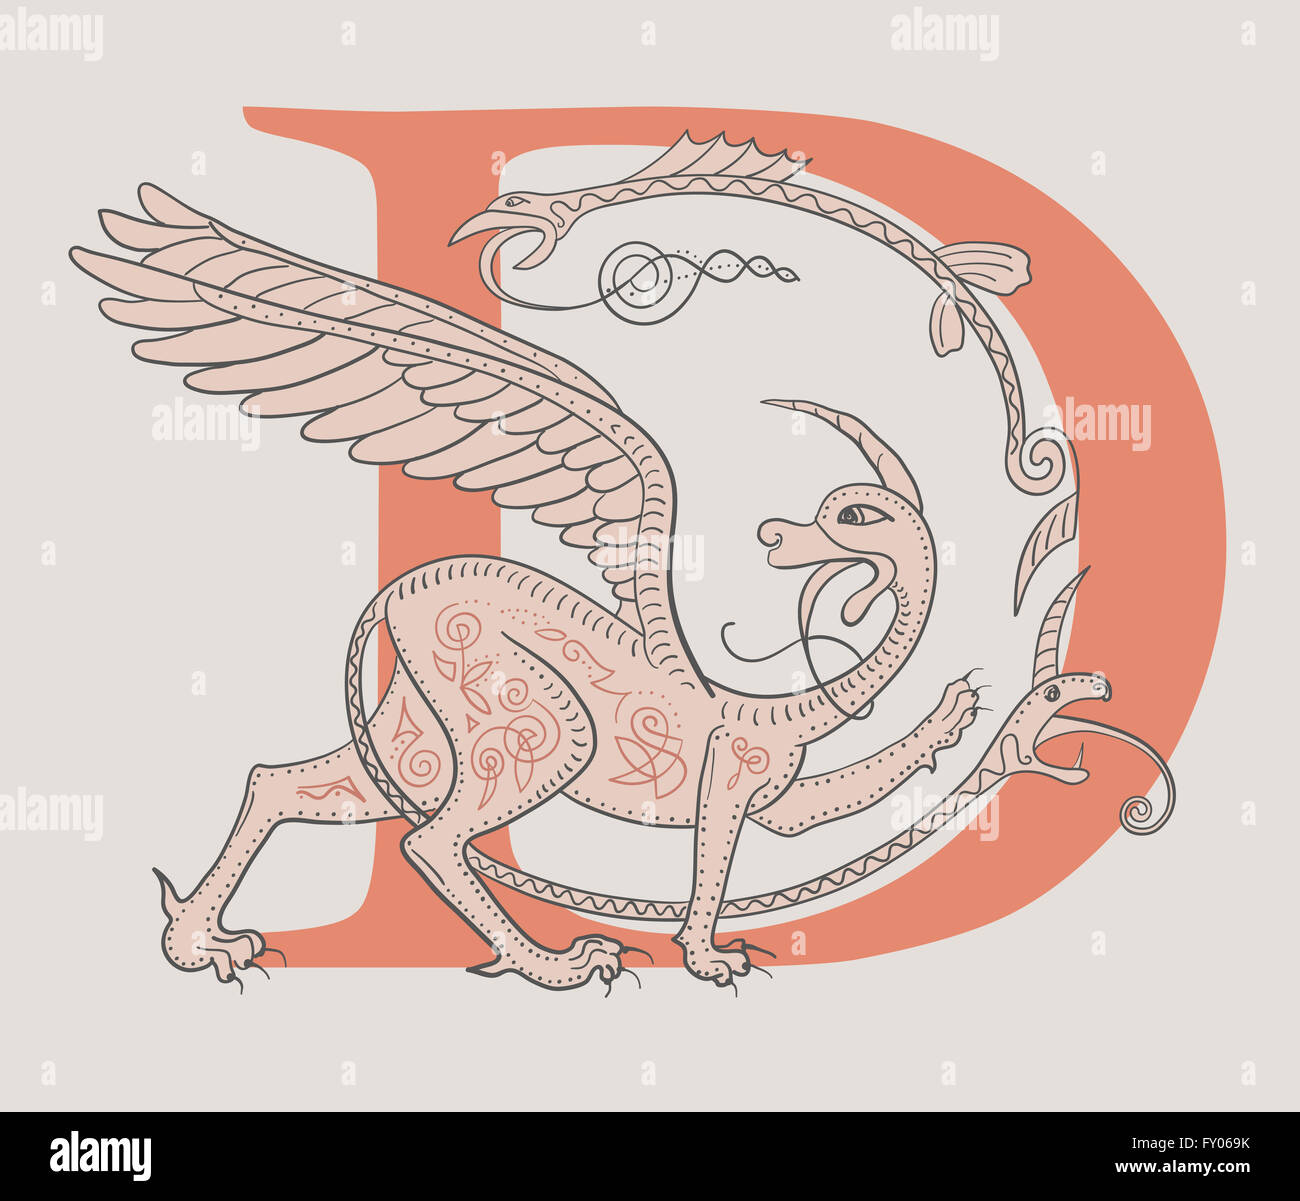 Griffin fantasy monster creature. Medieval style illustration circle decorative composition - Stock Image